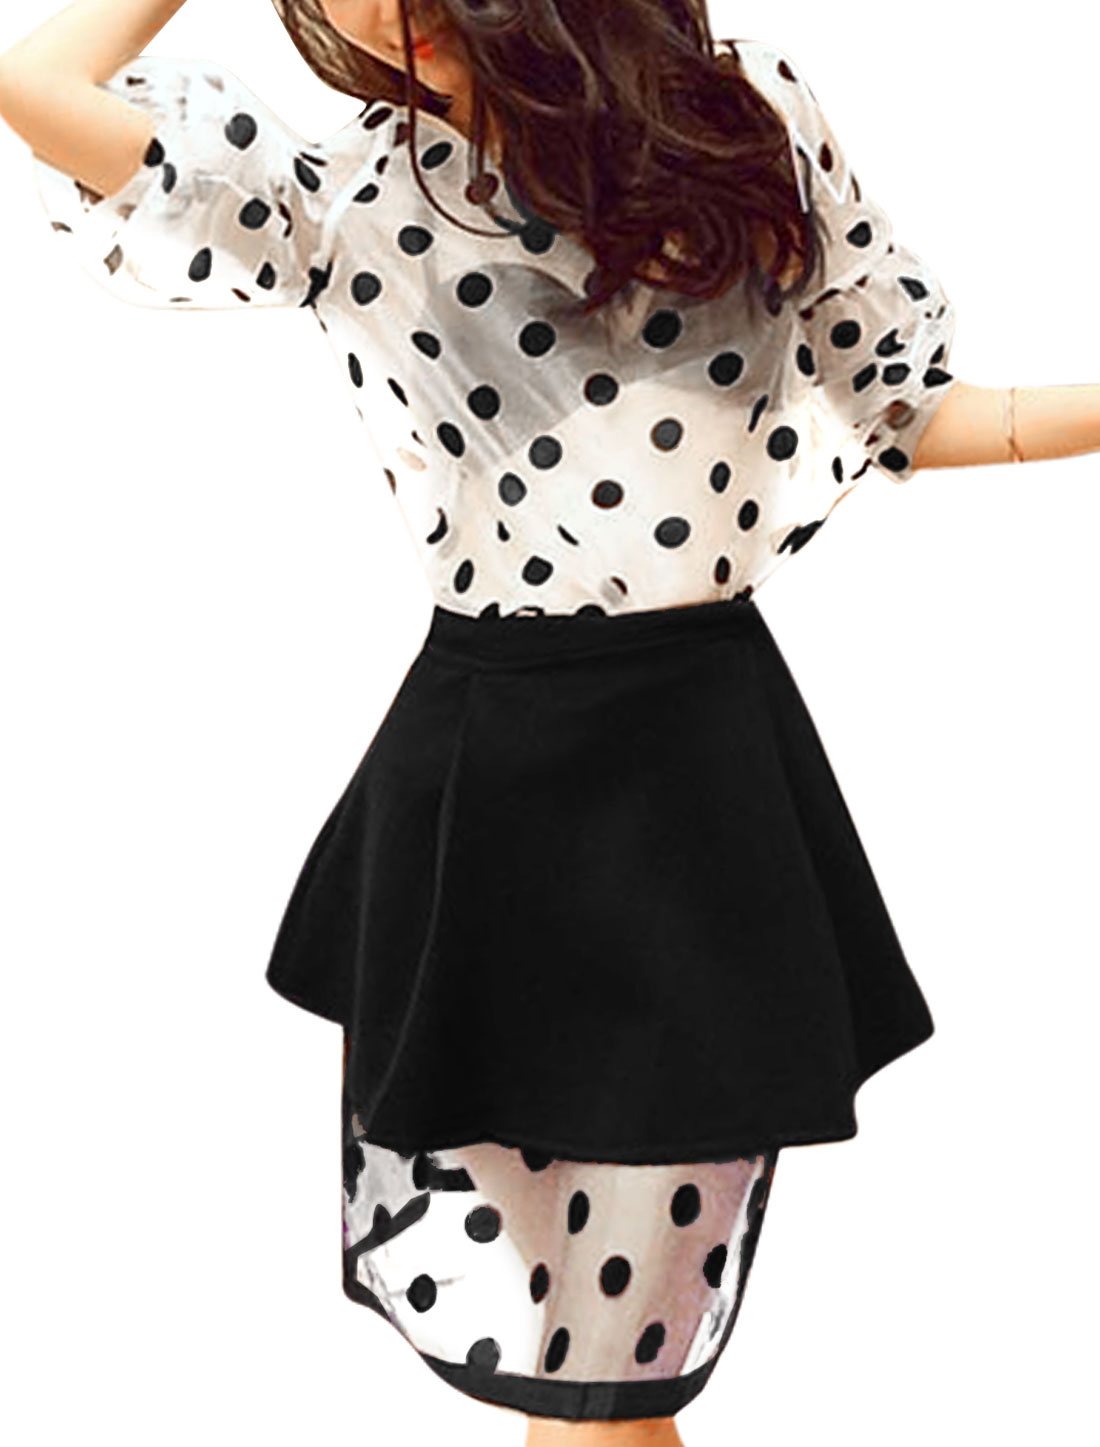 Lady's Summer Wear Bishop Sleeve Dots Pattern Semi Sheer Top w Skirt Set Black XS